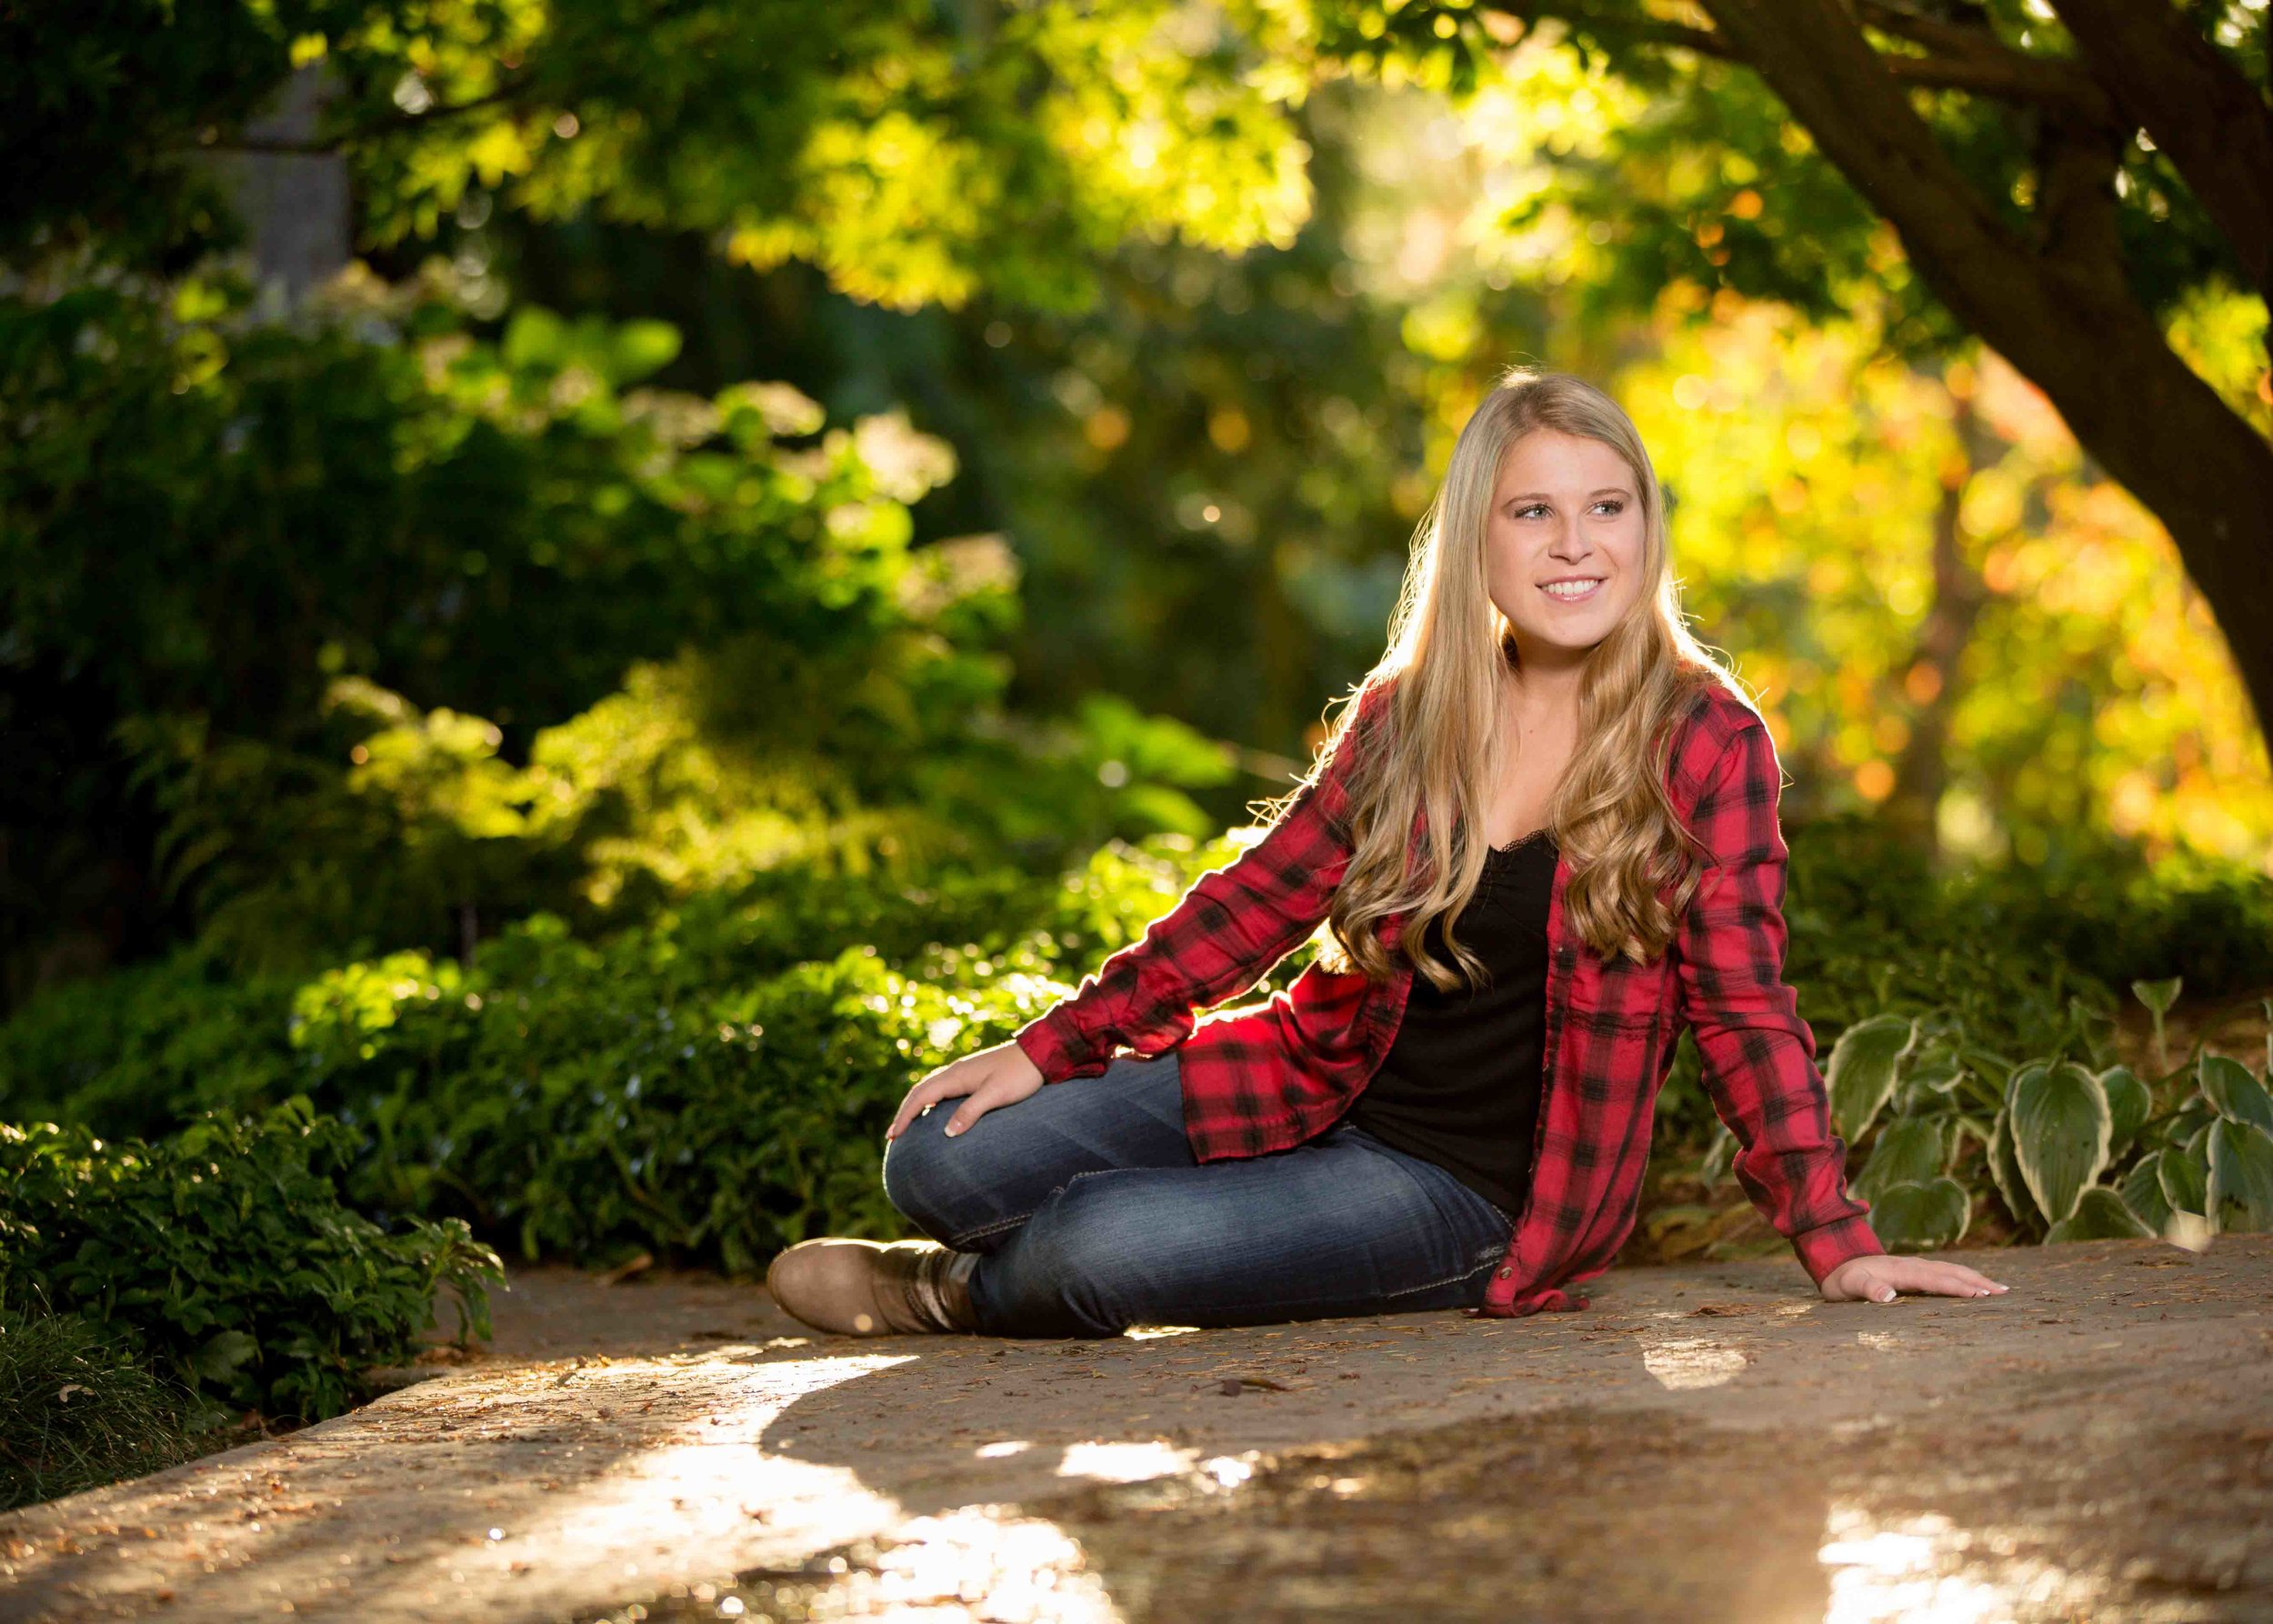 Snohomish County Senior Portrait Photographer | Lake Stevens, WA